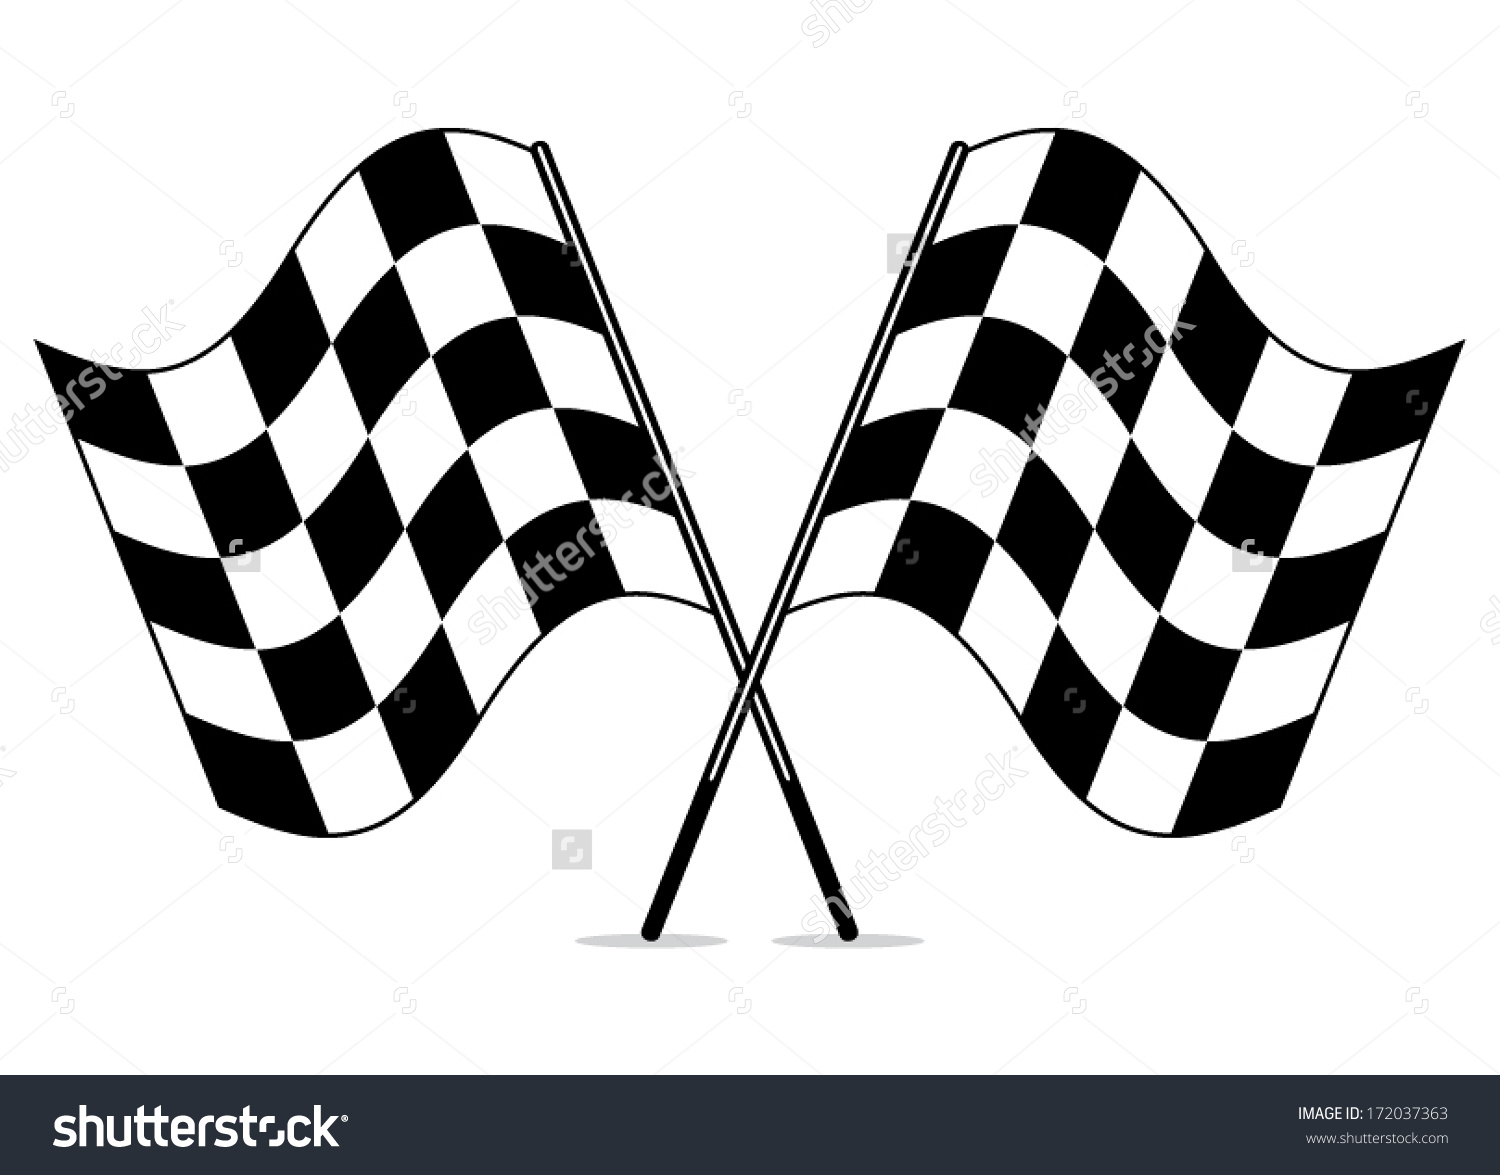 Checked flag clipart.